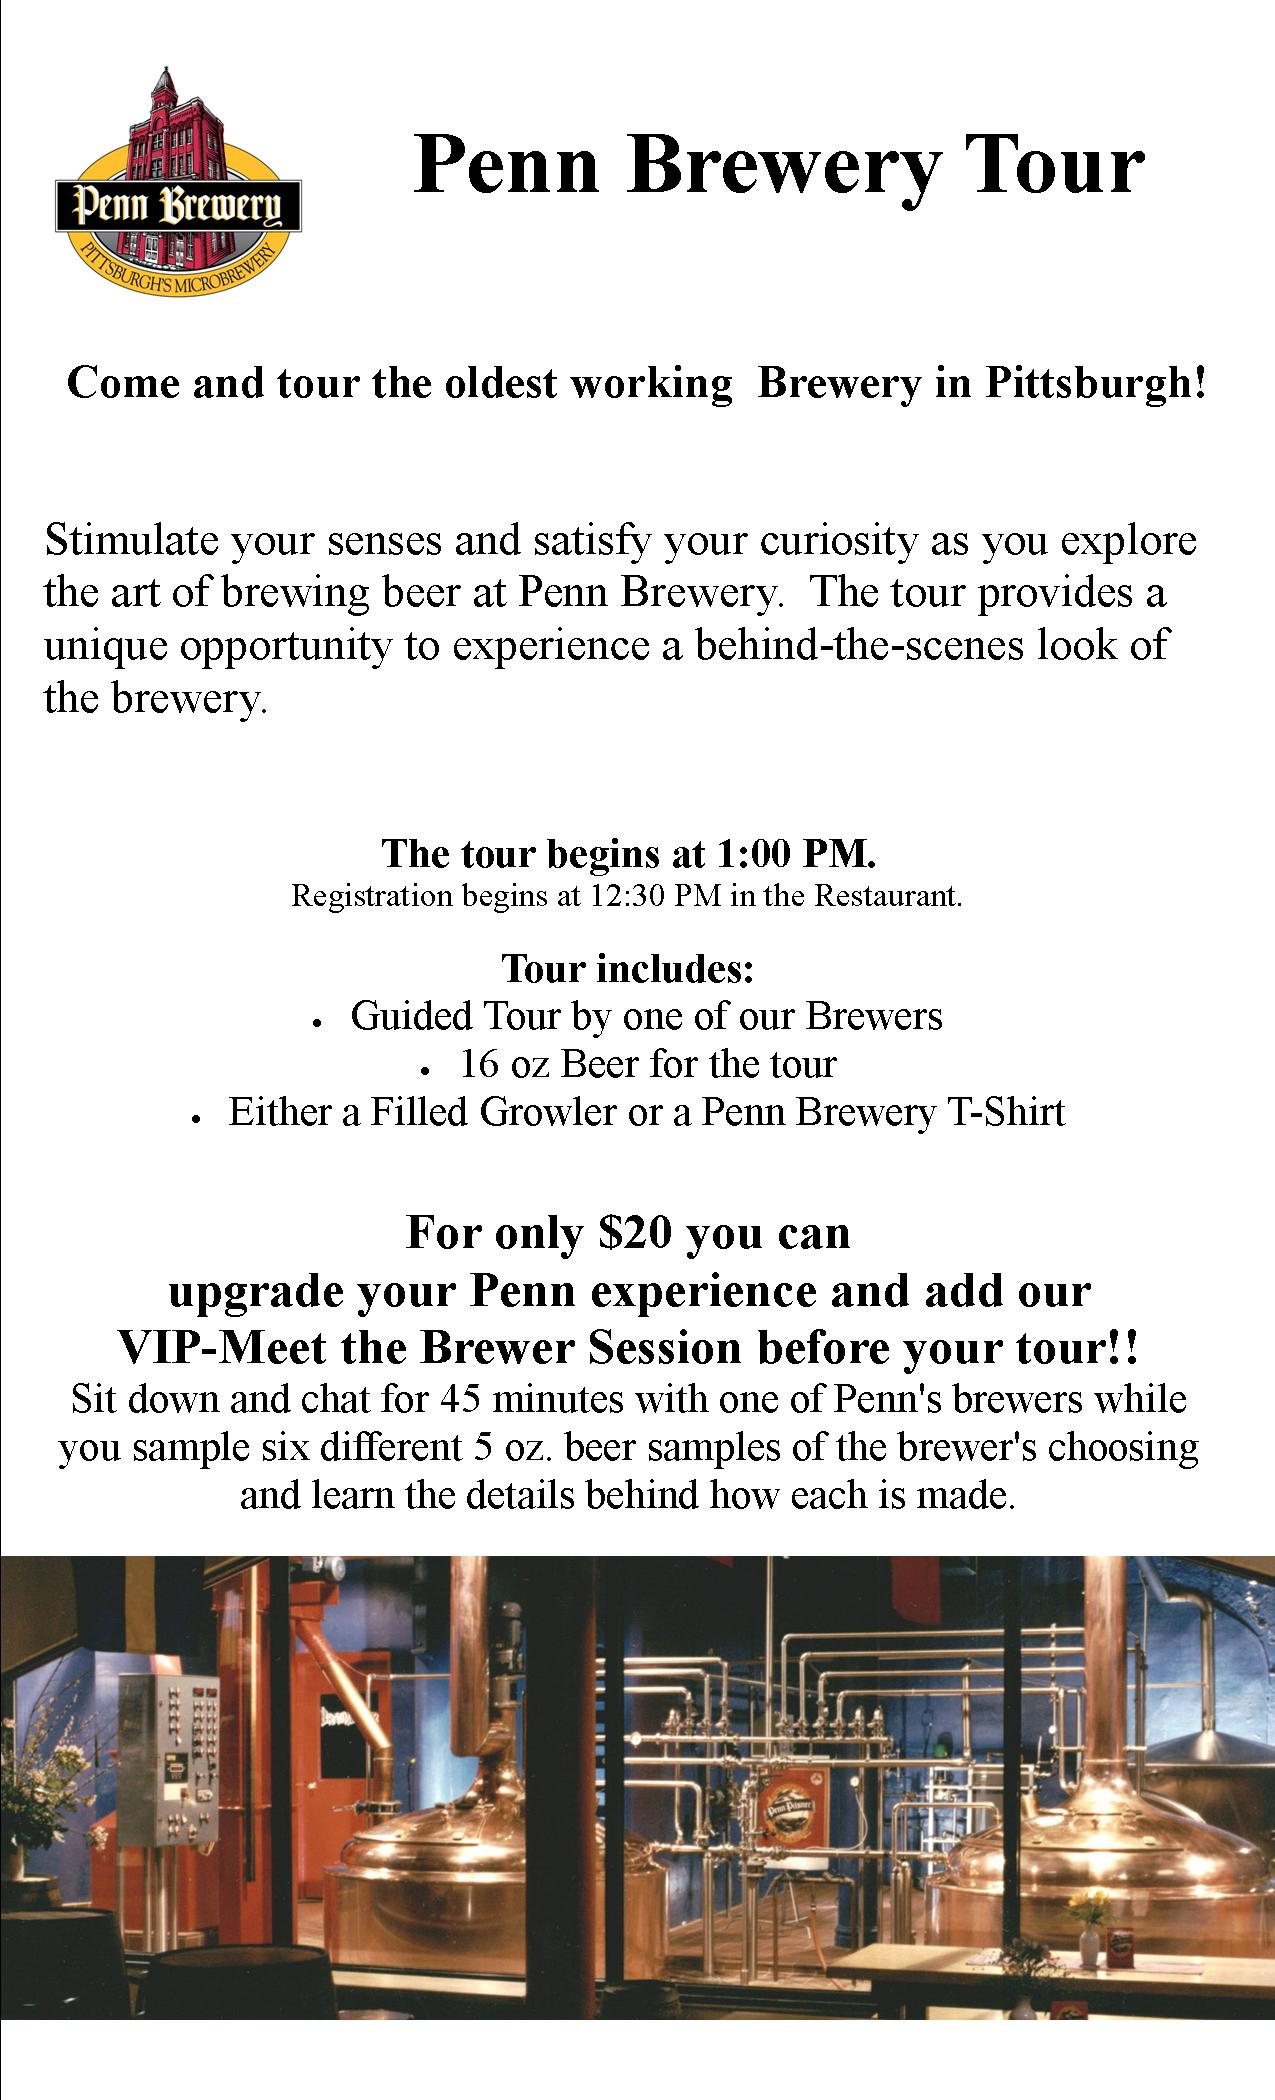 Tickets for Penn Brewery Tour - June 20 in Pittsburgh from ShowClix